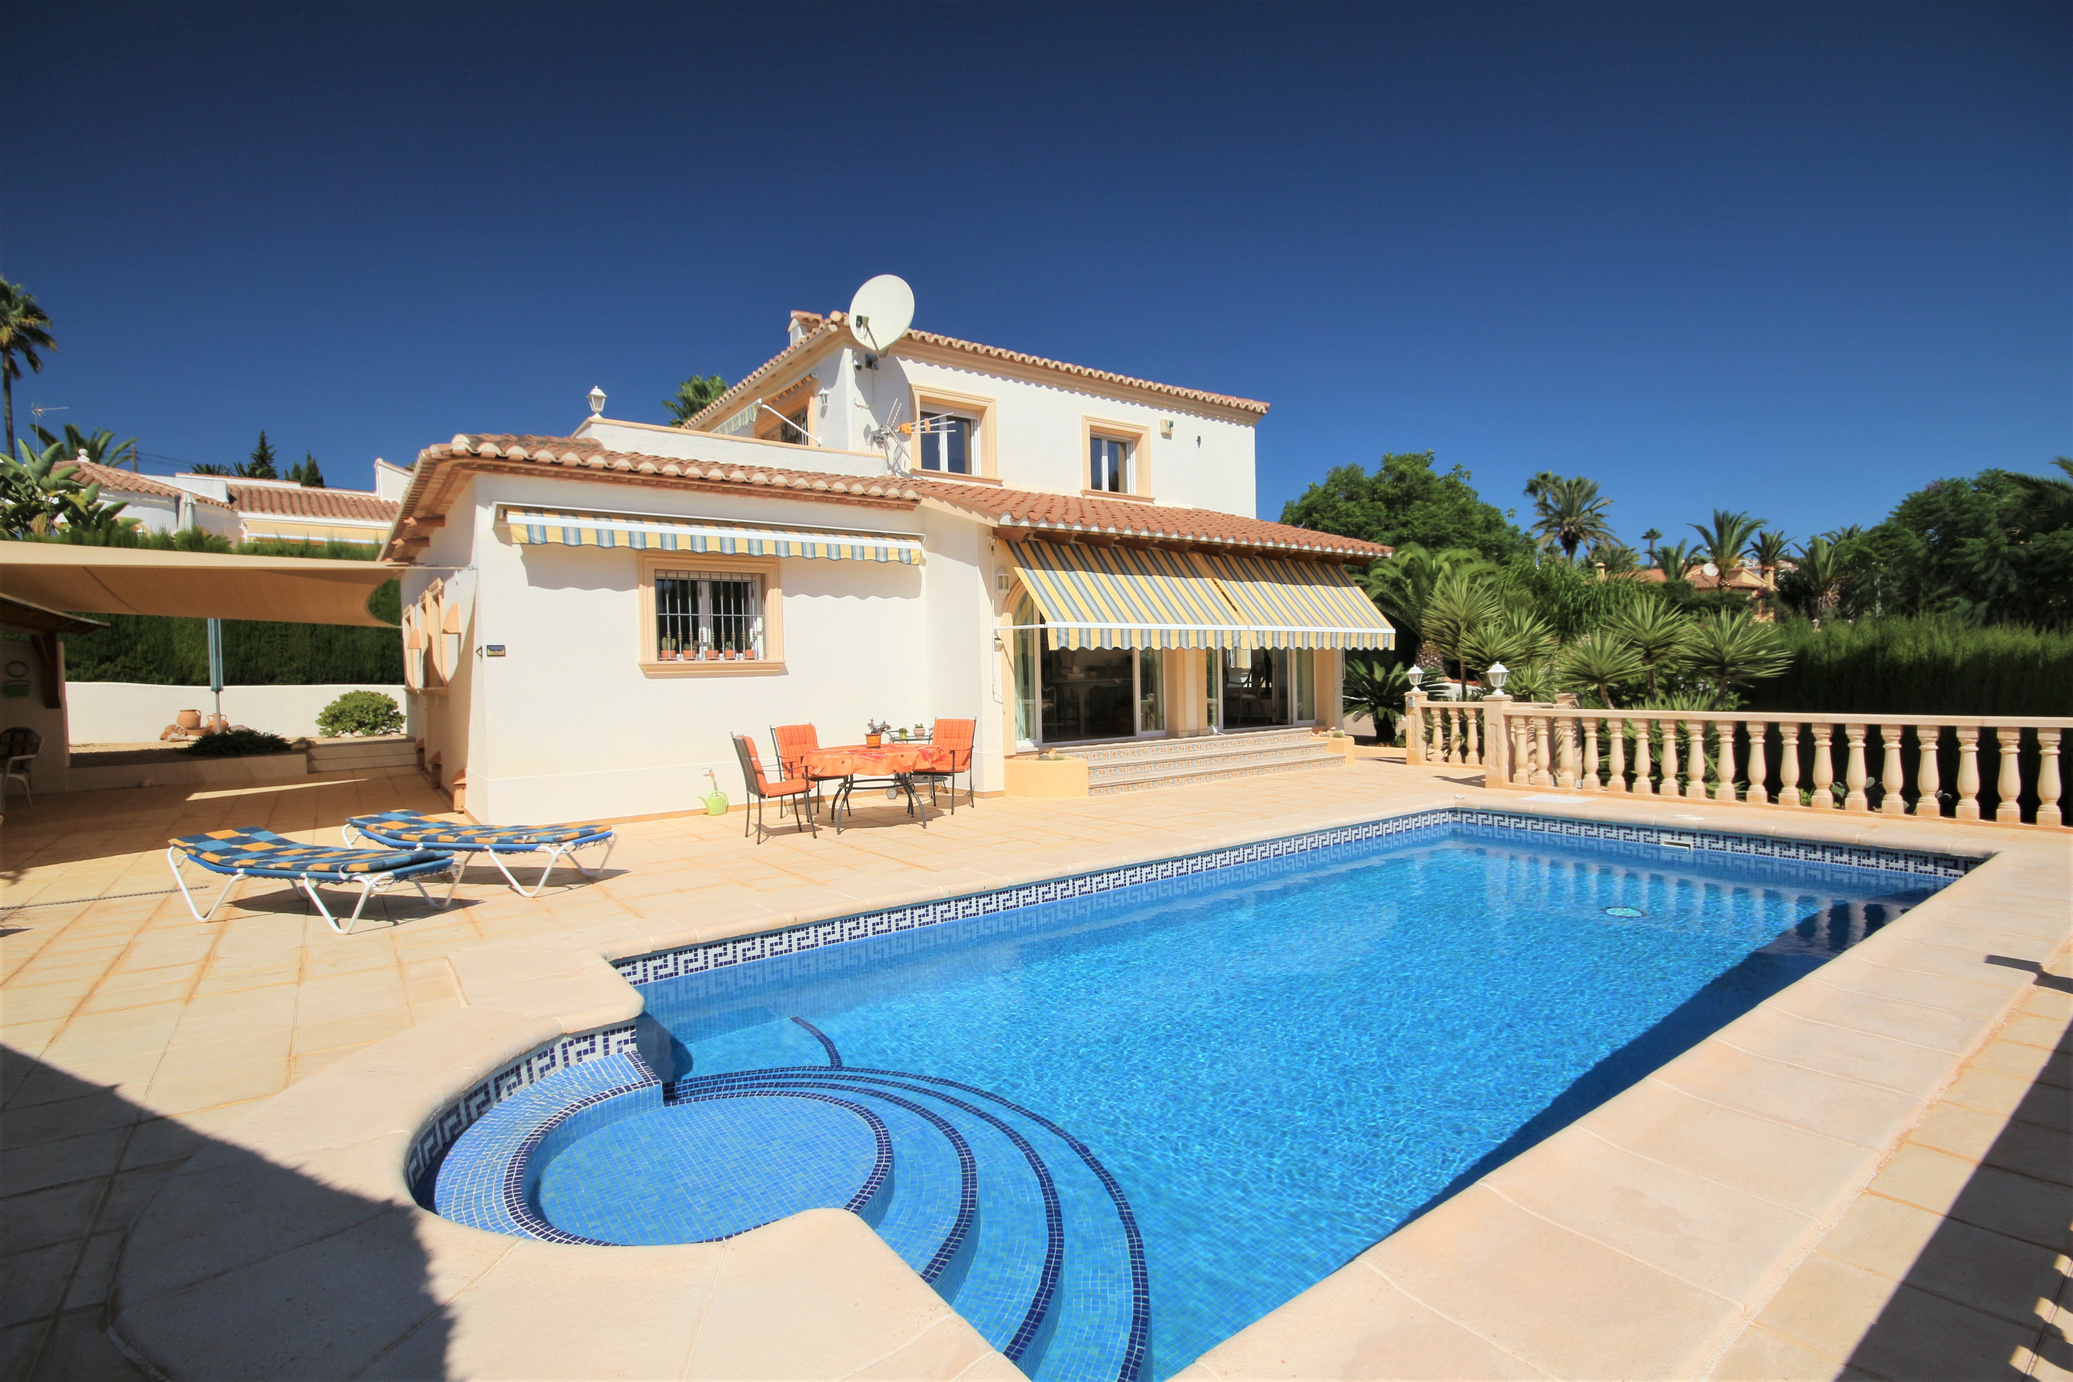 AN IMMACULATE THREE BEDROOM, TWO BATHROOM VILLA IN CALPE